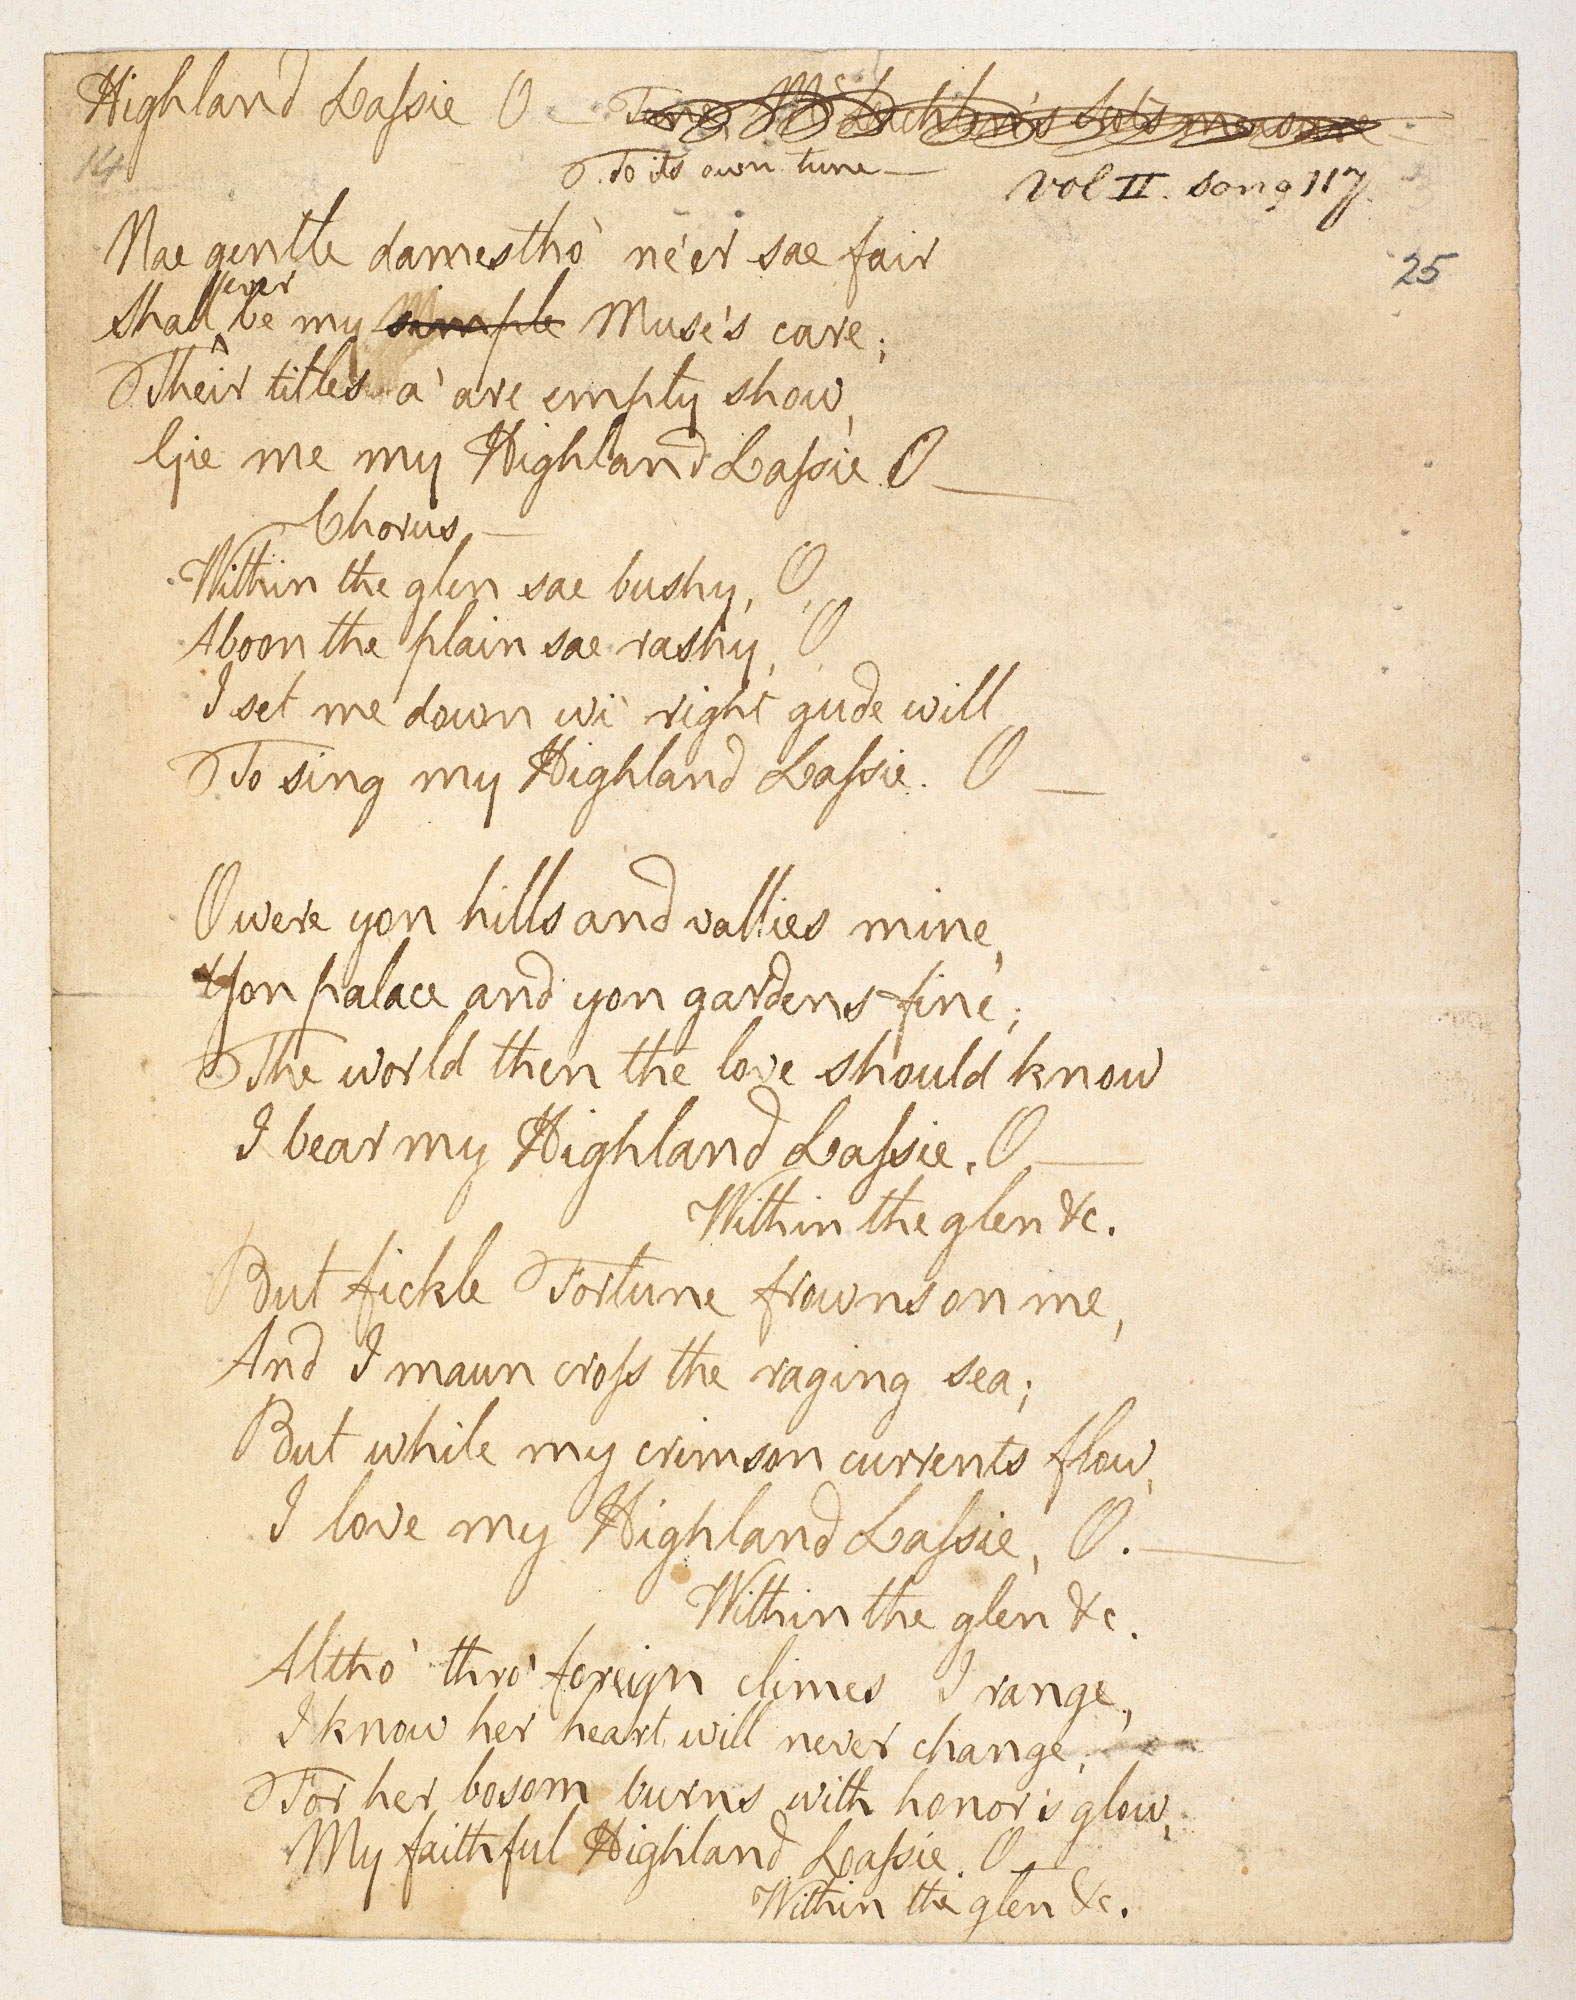 Manuscript songs collected by Robert Burns